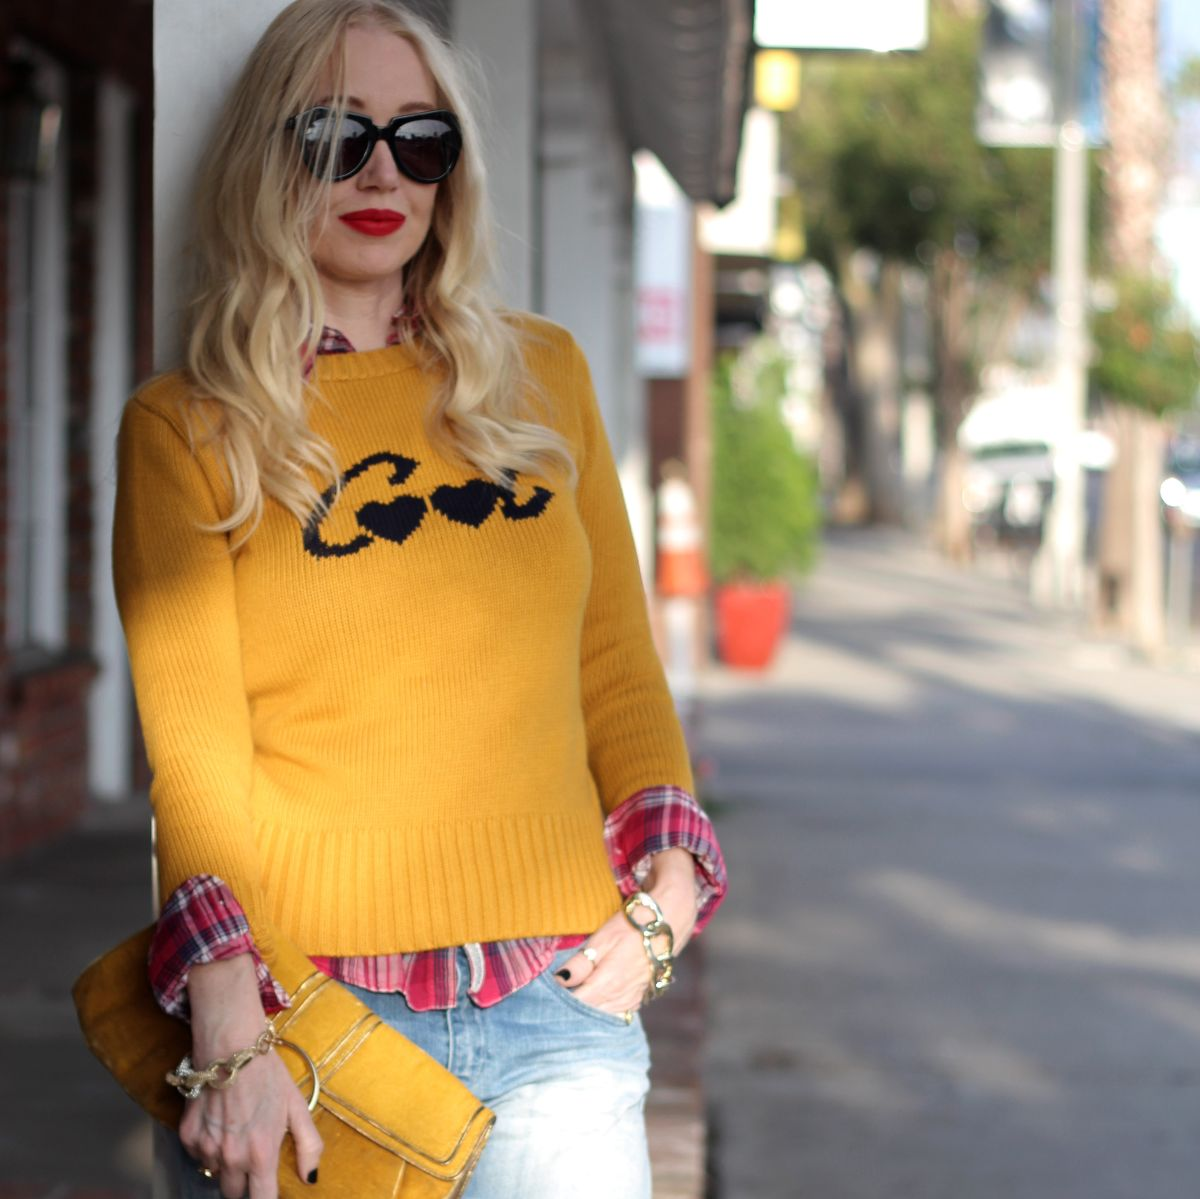 zara cool sweater, zara yellow sweater, karen walker sunglasses, stila beso, stila beso lipstick